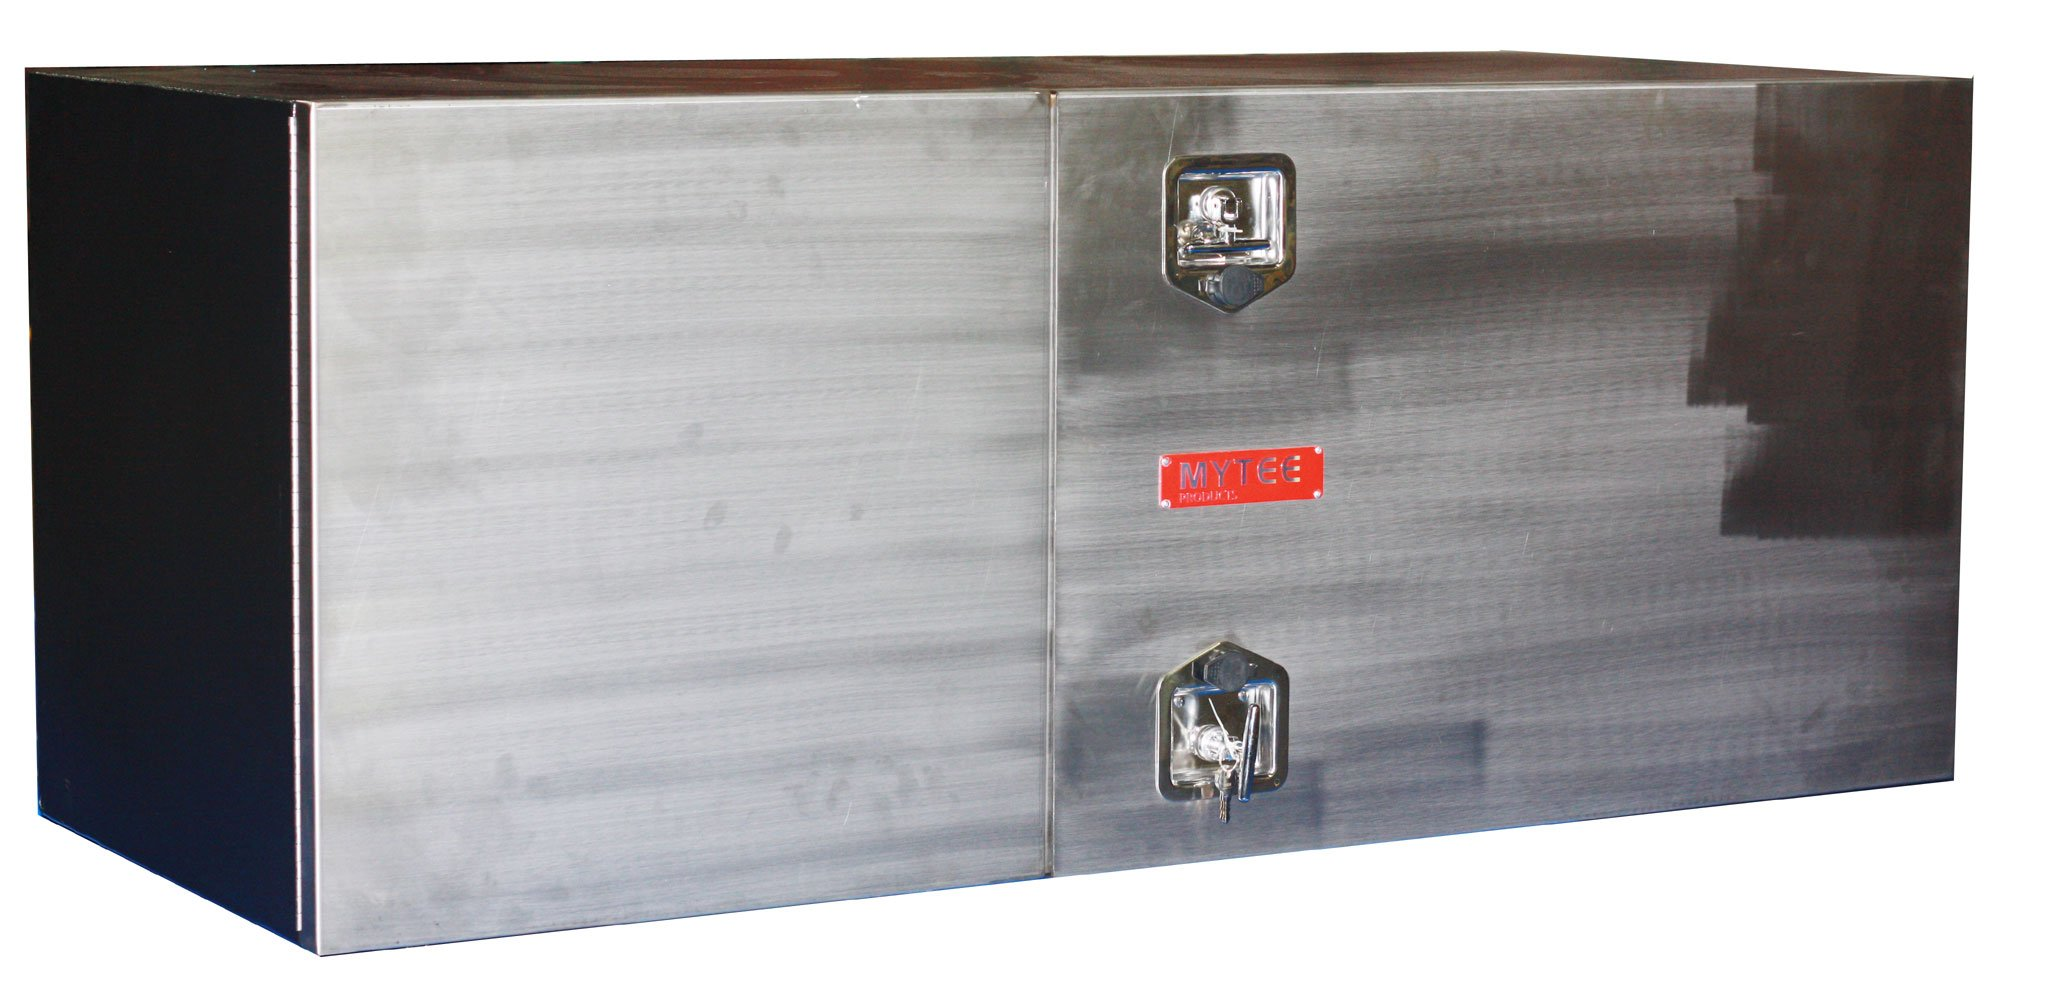 UnderBody ToolBox Trailer 24 24 60 Stainless Steel Replaces Buyers 1704715